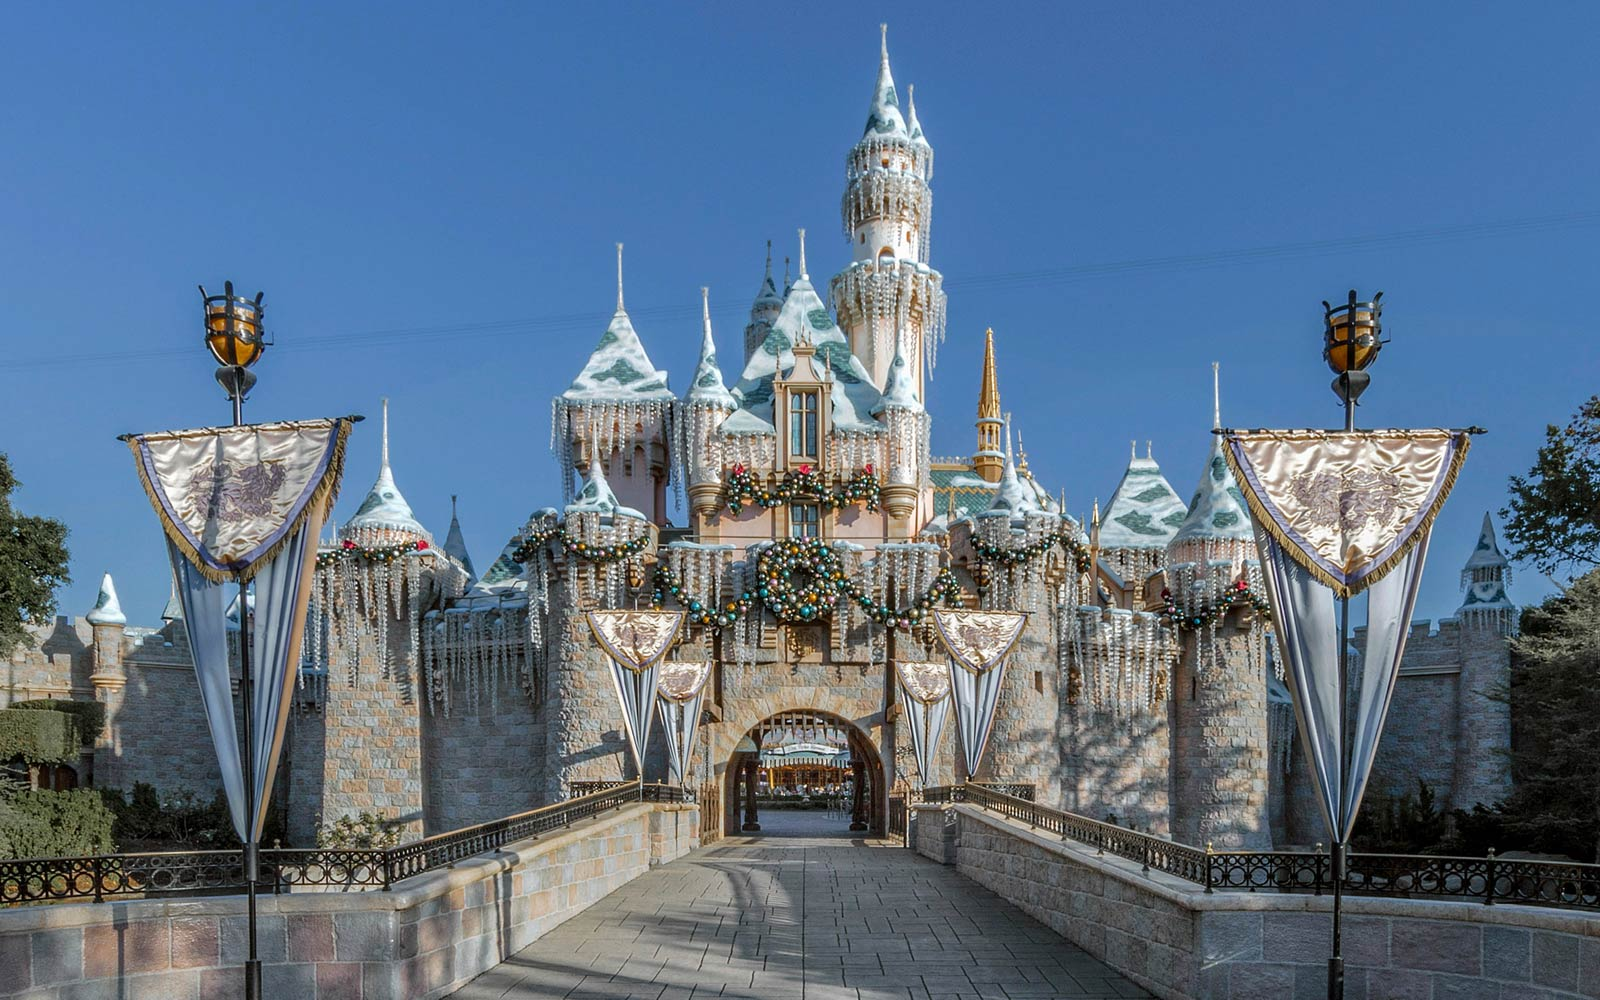 Why Disneyland Is the Best Place on Earth to Celebrate the Holidays